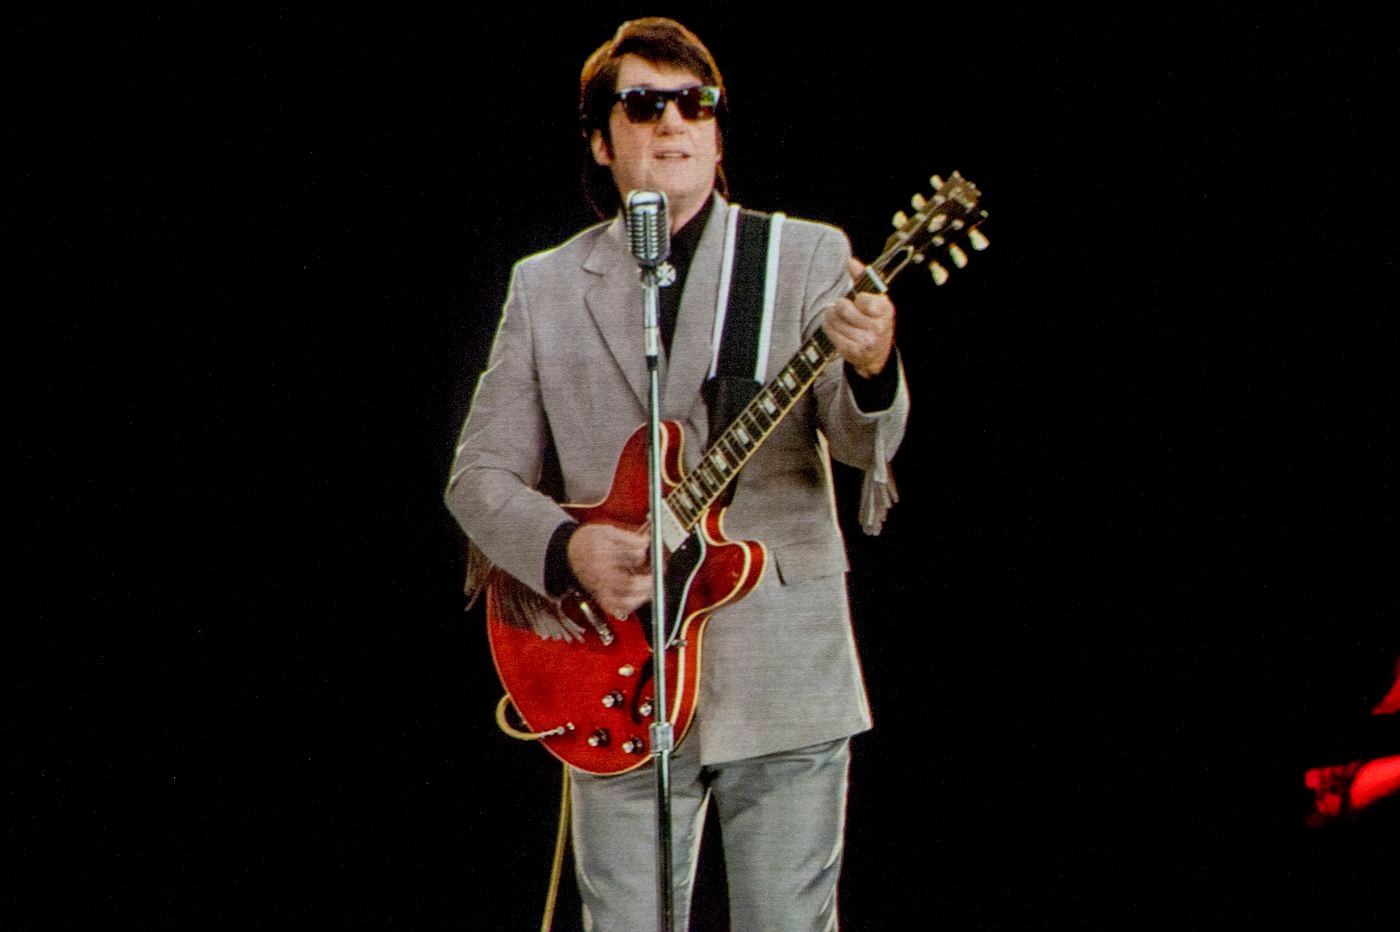 The Roy Orbison Hologram at Parx: So real it's beyond fake